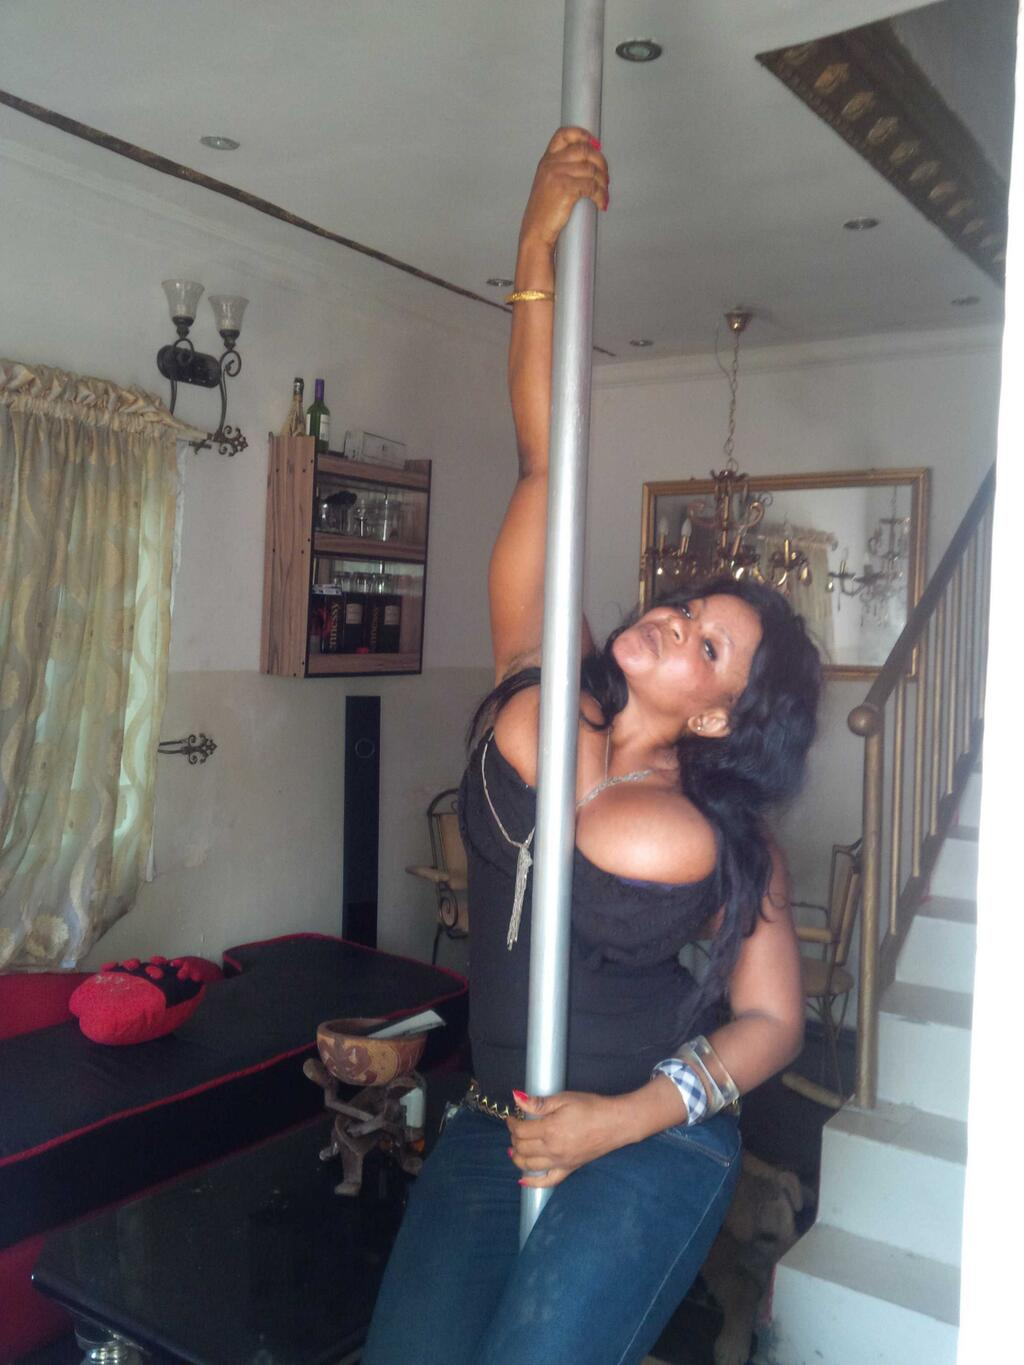 welcome to 47 39 s blog photos cossy orjiakor loving the stripper pole